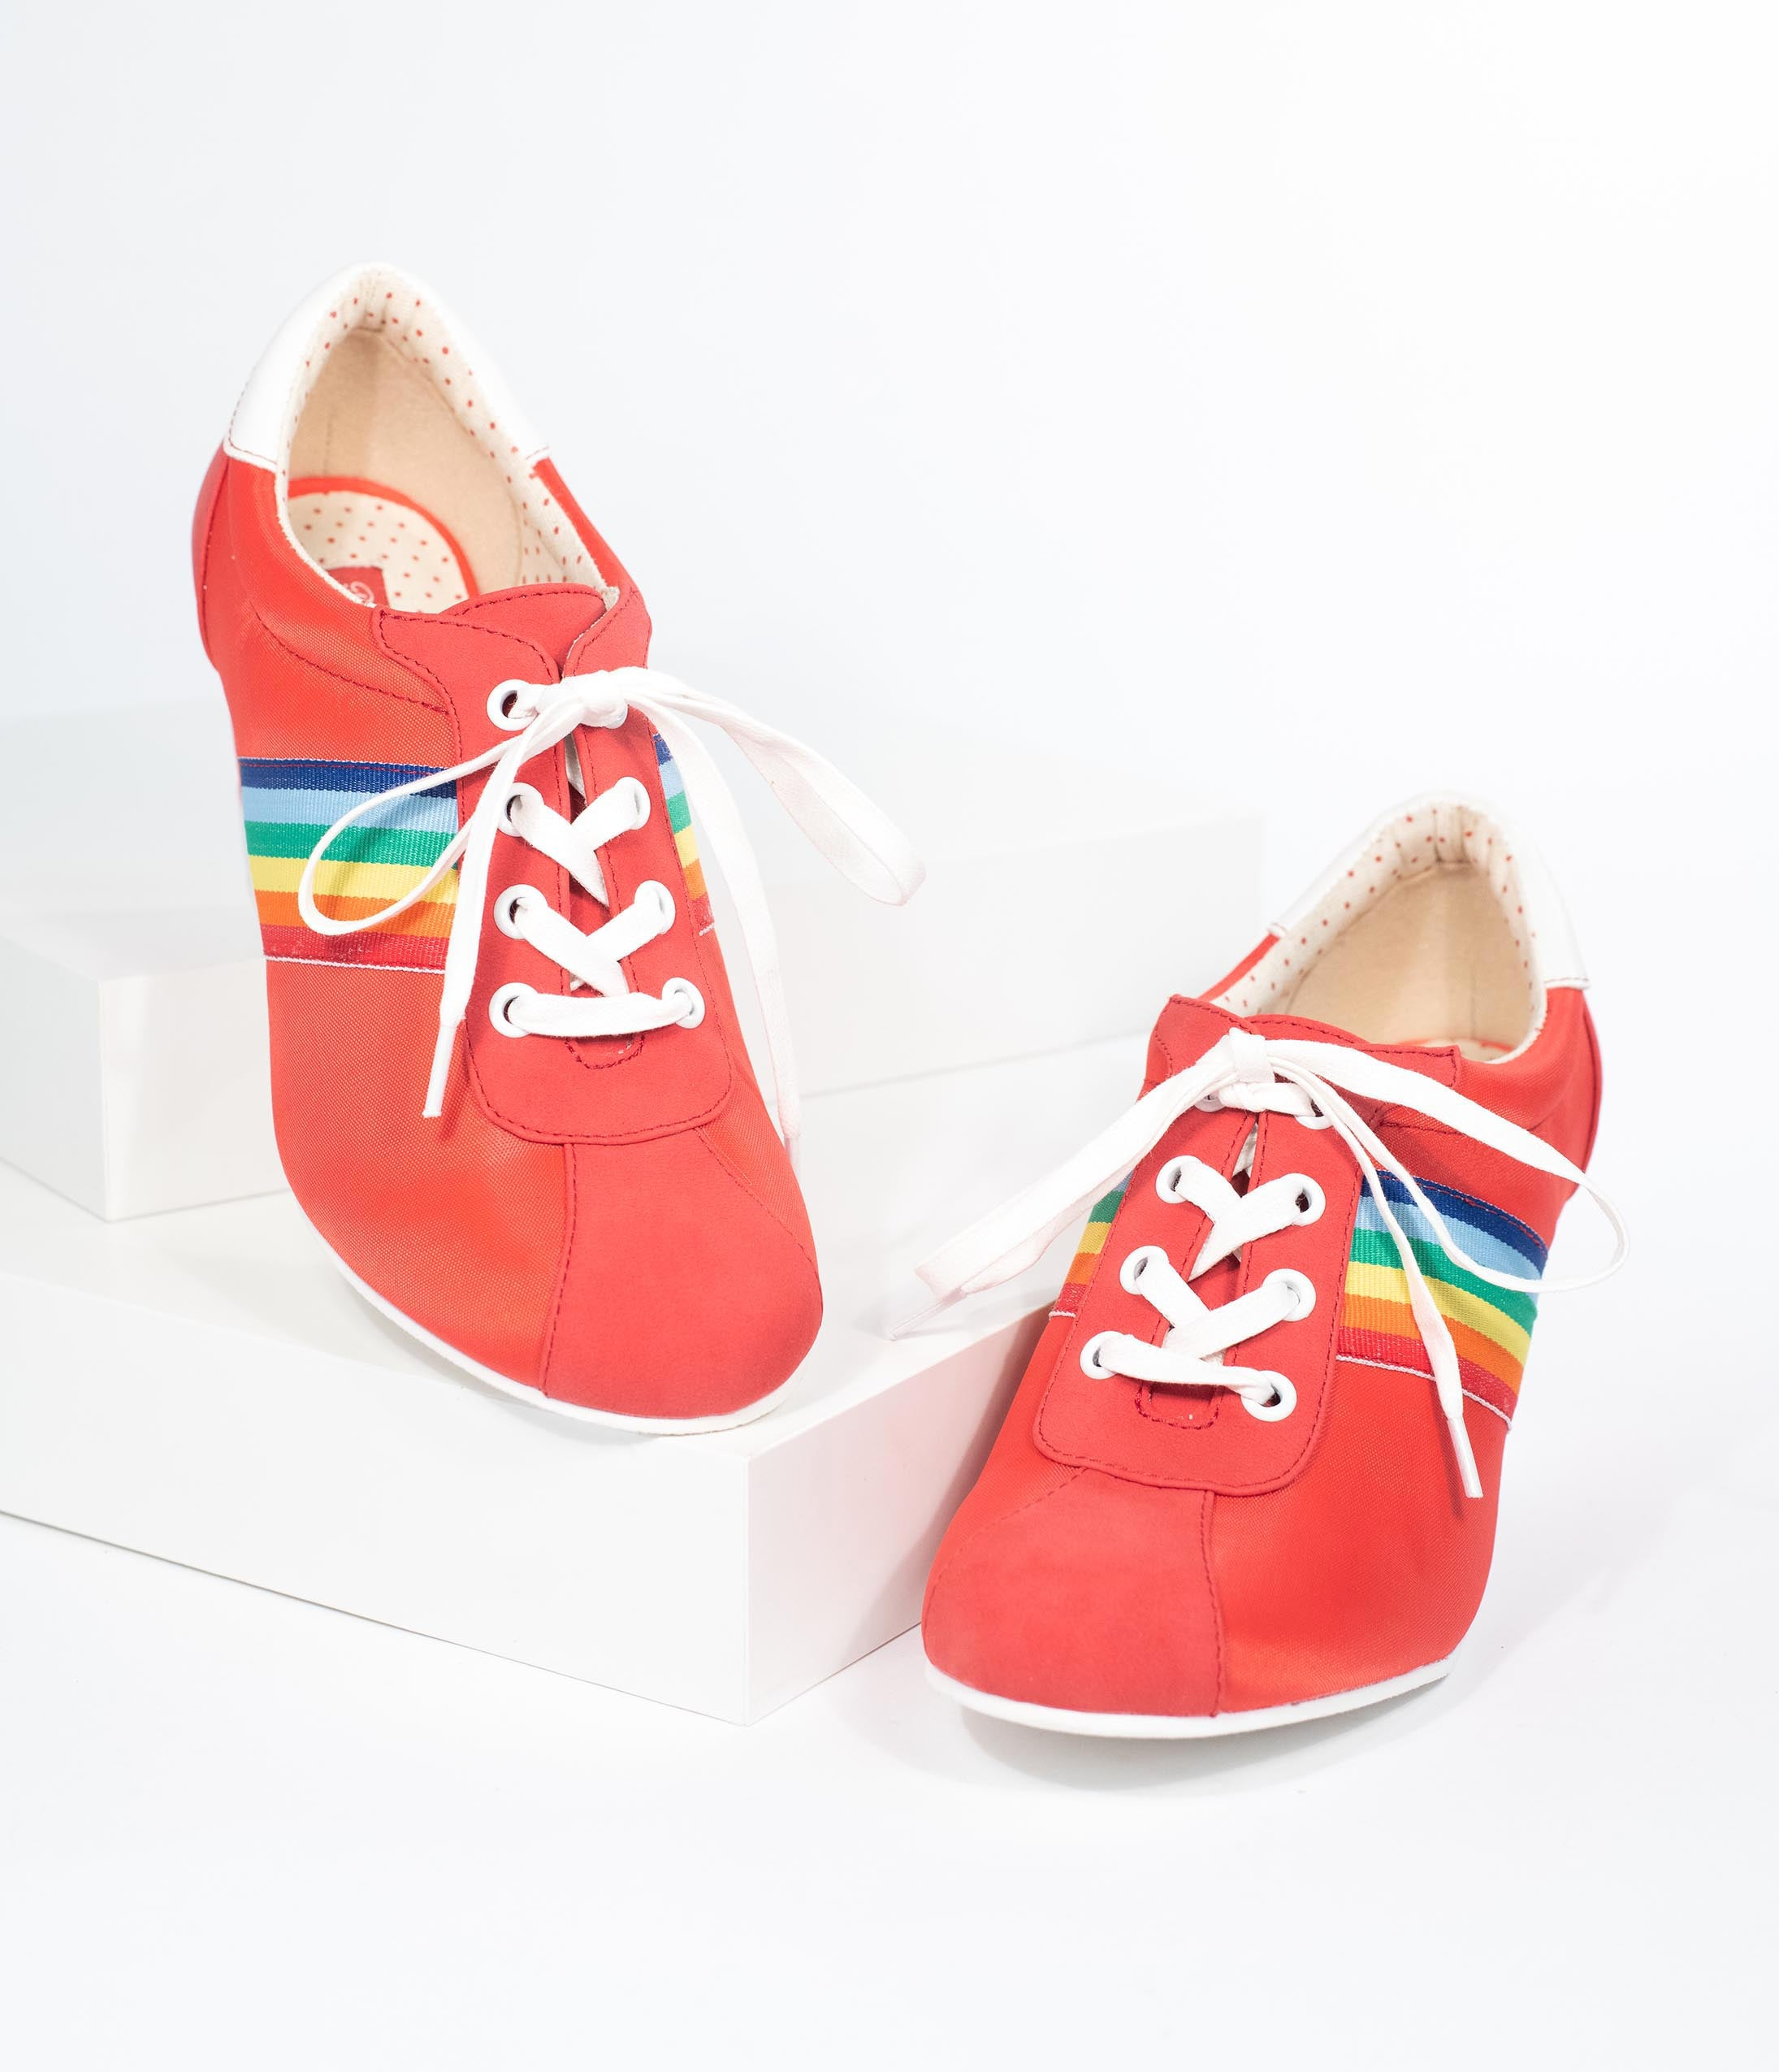 536aa696b42 B.A.I.T. 1970s Style Red Suede Rainbow Oxford Lace Up Dallas Wedges